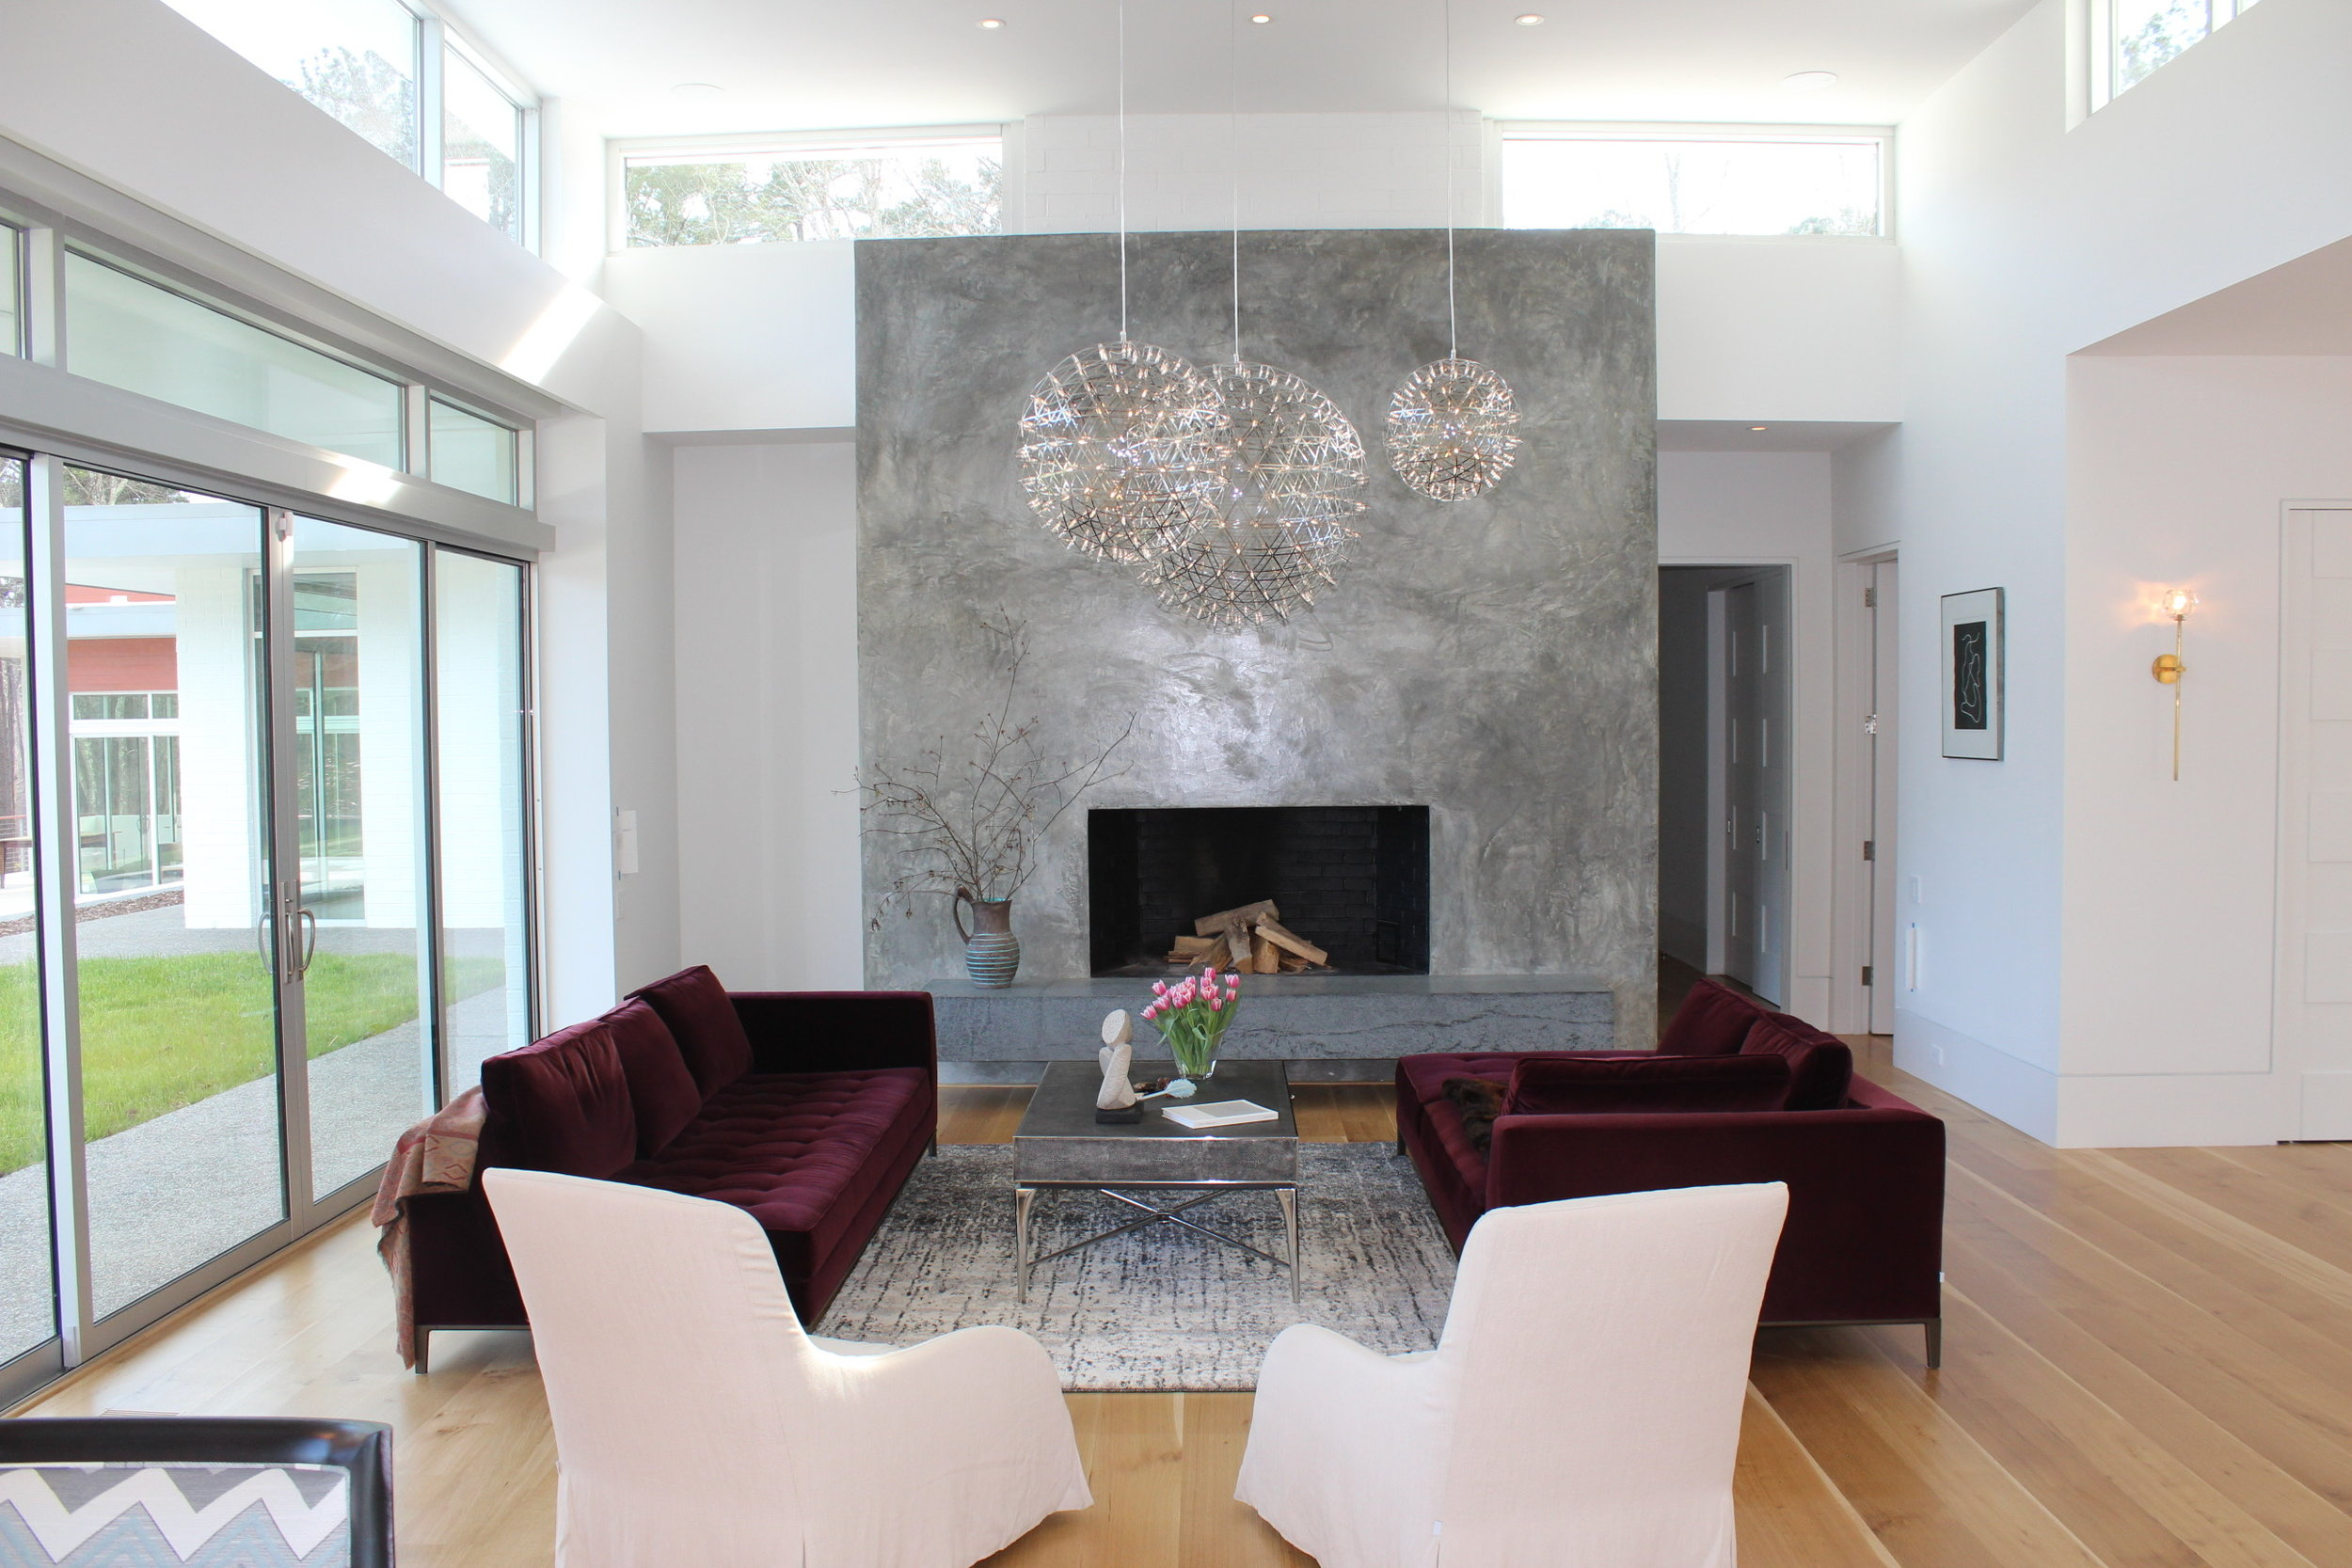 08 Private Residence Chapel Hill.jpg